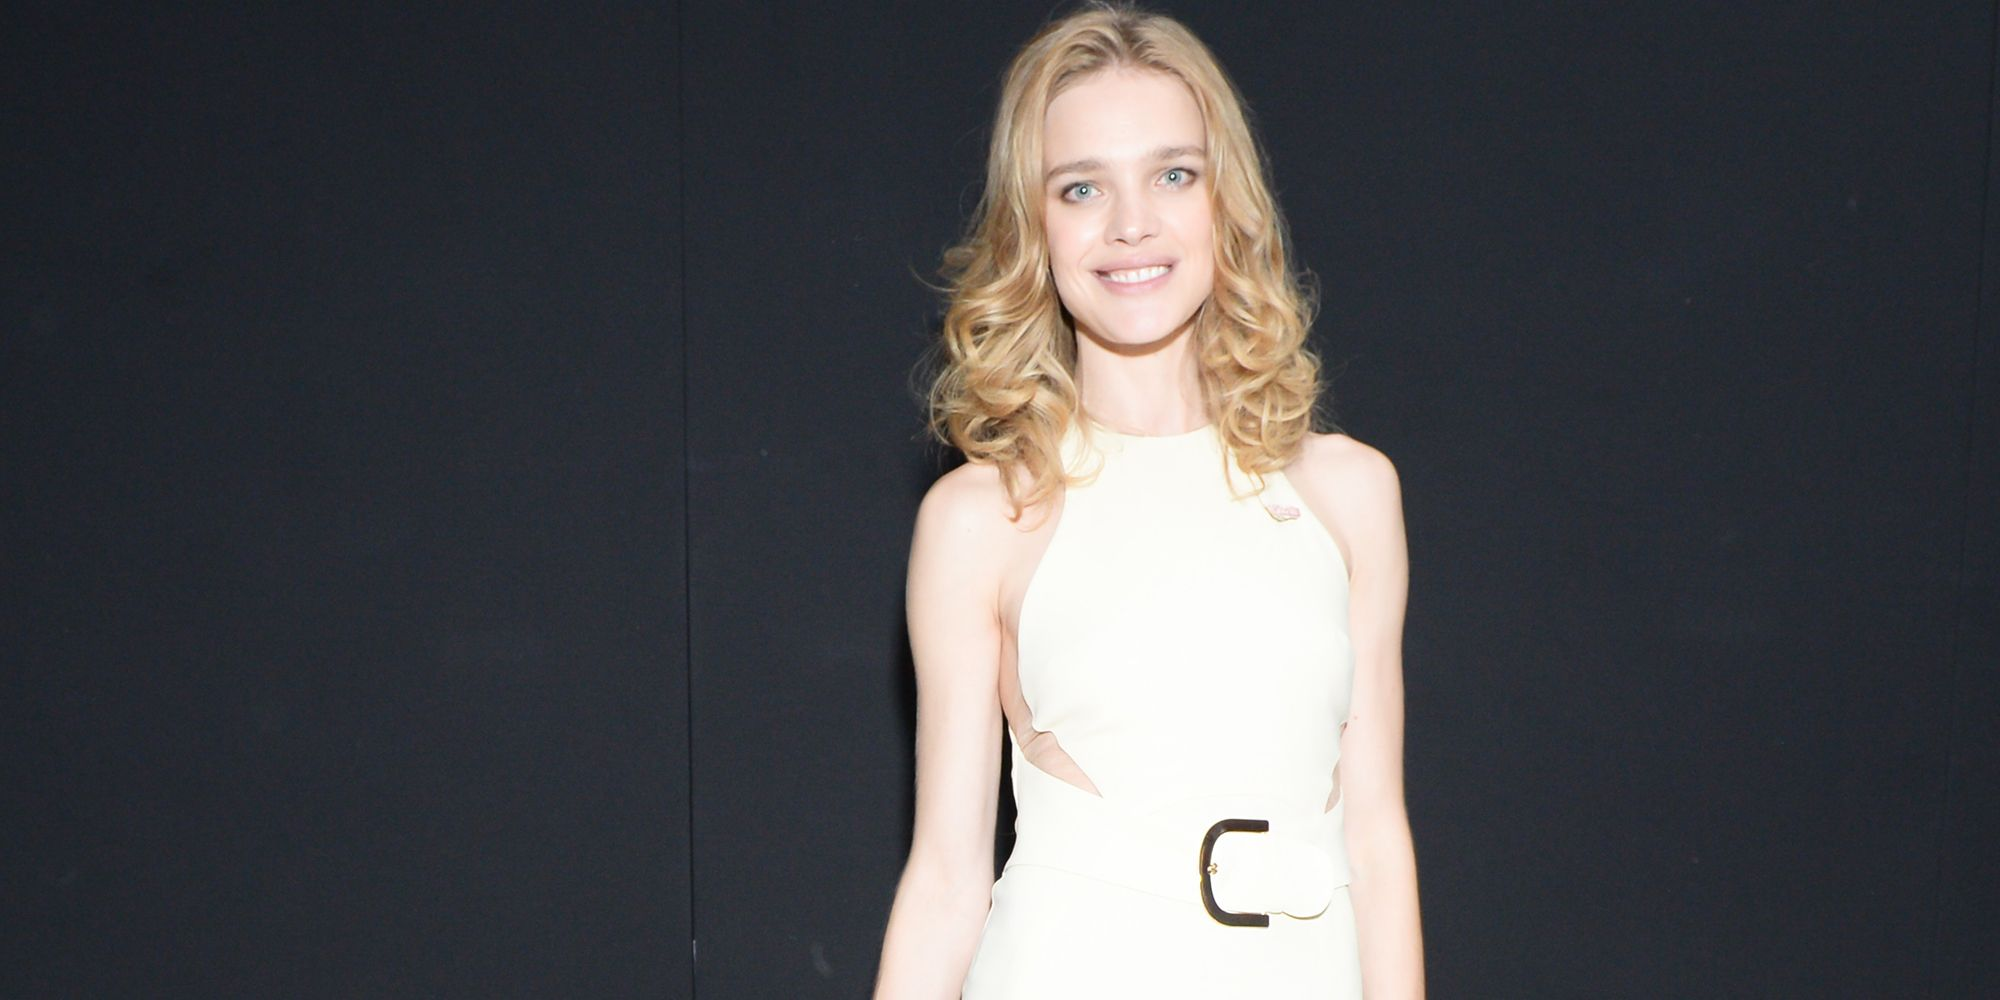 The next bridegroom of Natalia Vodyanova 07/28/2011 93